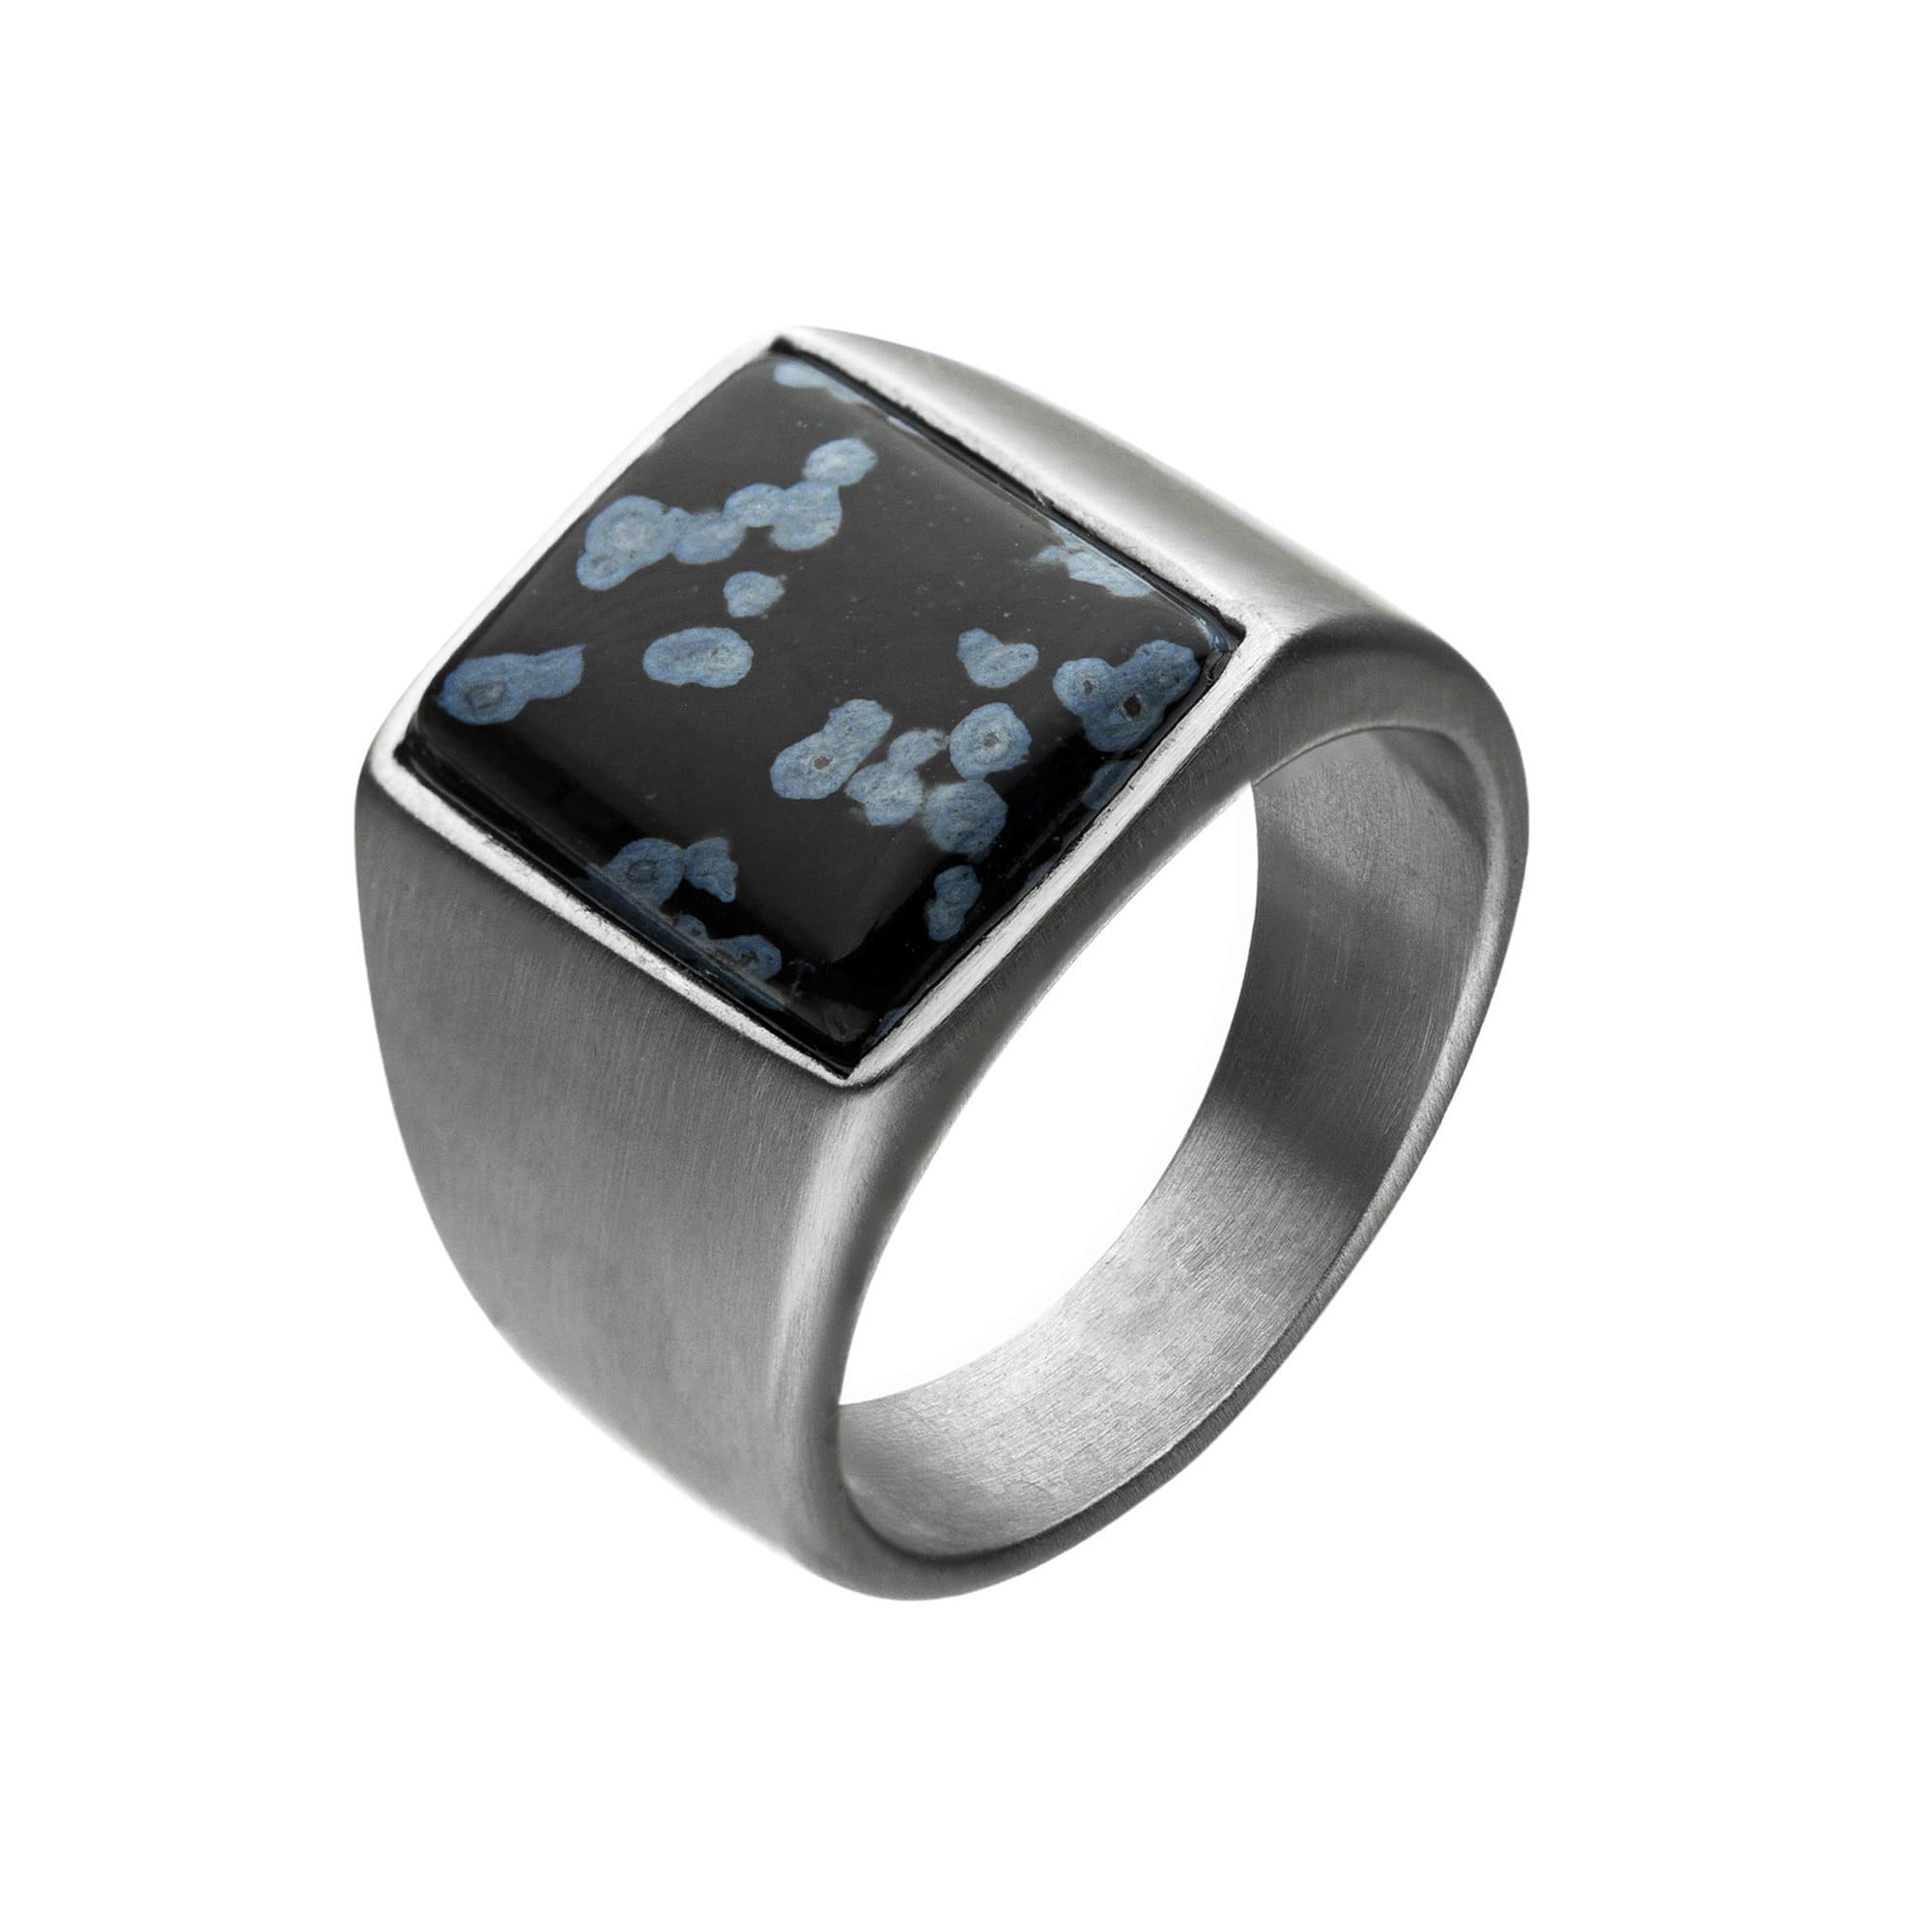 Silver Stainless Steel Matte Finish with Polished Snowflake Stone Signet Ring